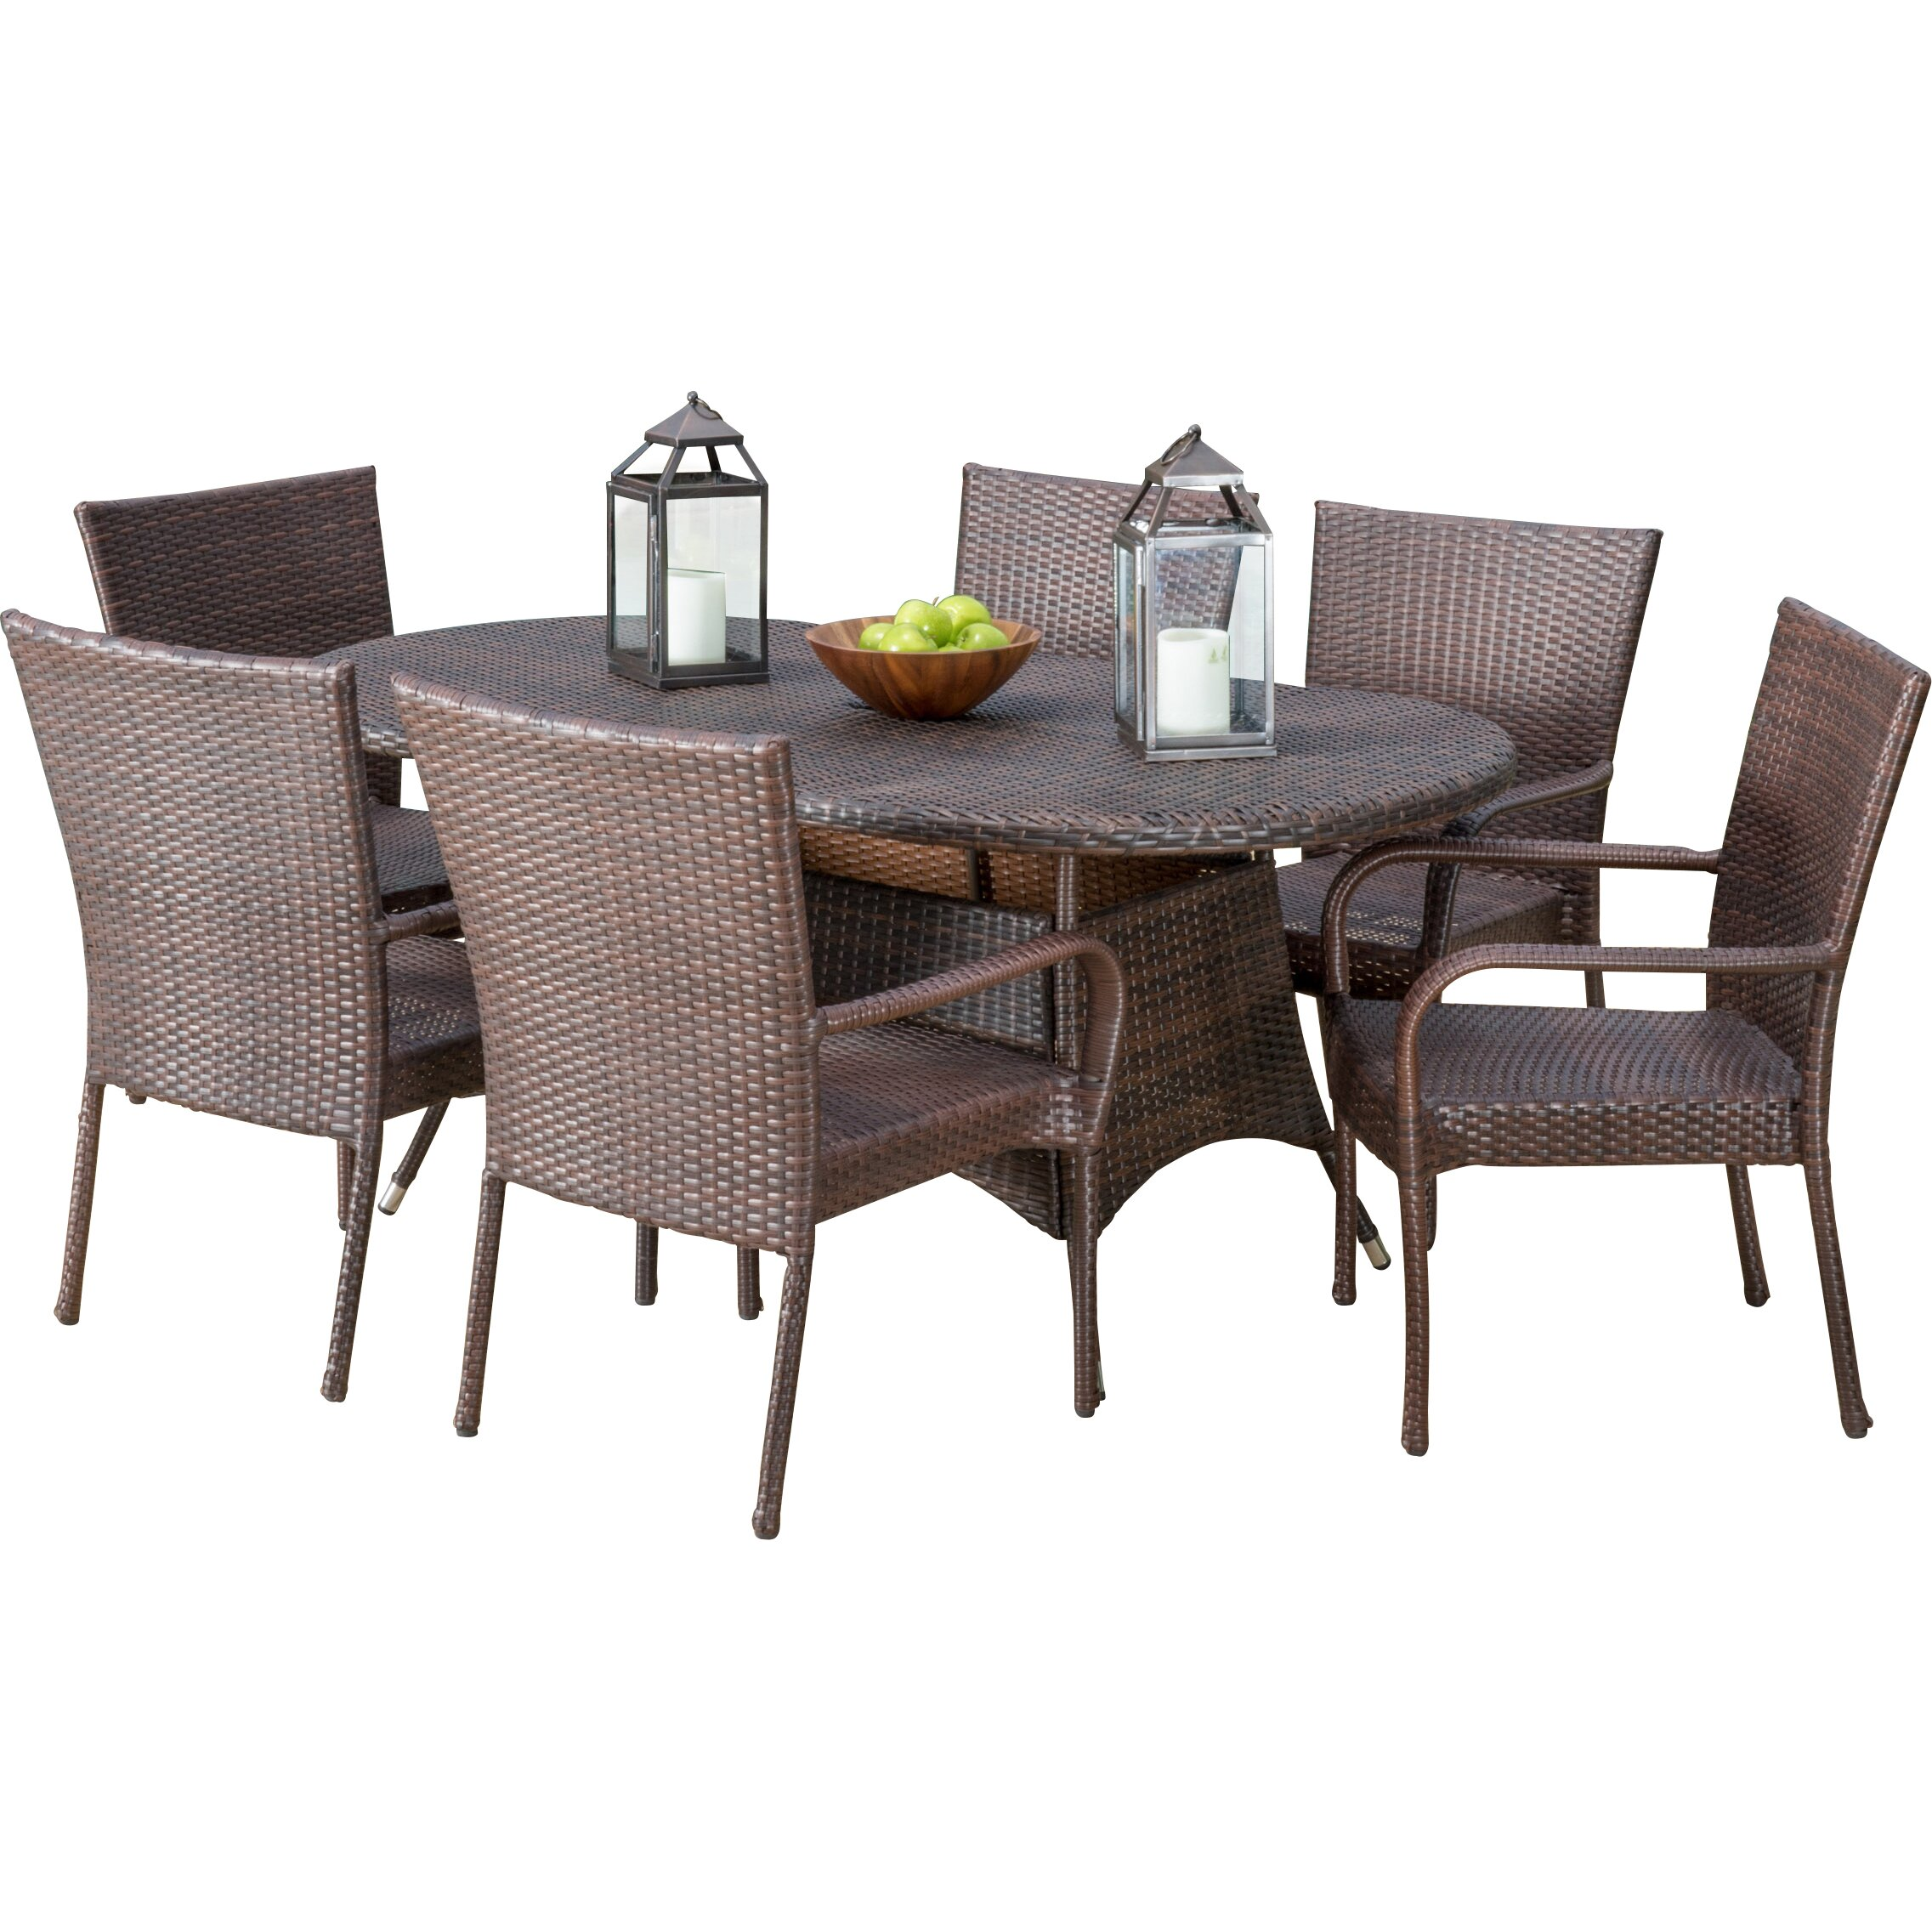 Home loft concepts blakely 7 piece dining set reviews for 7 piece dining set